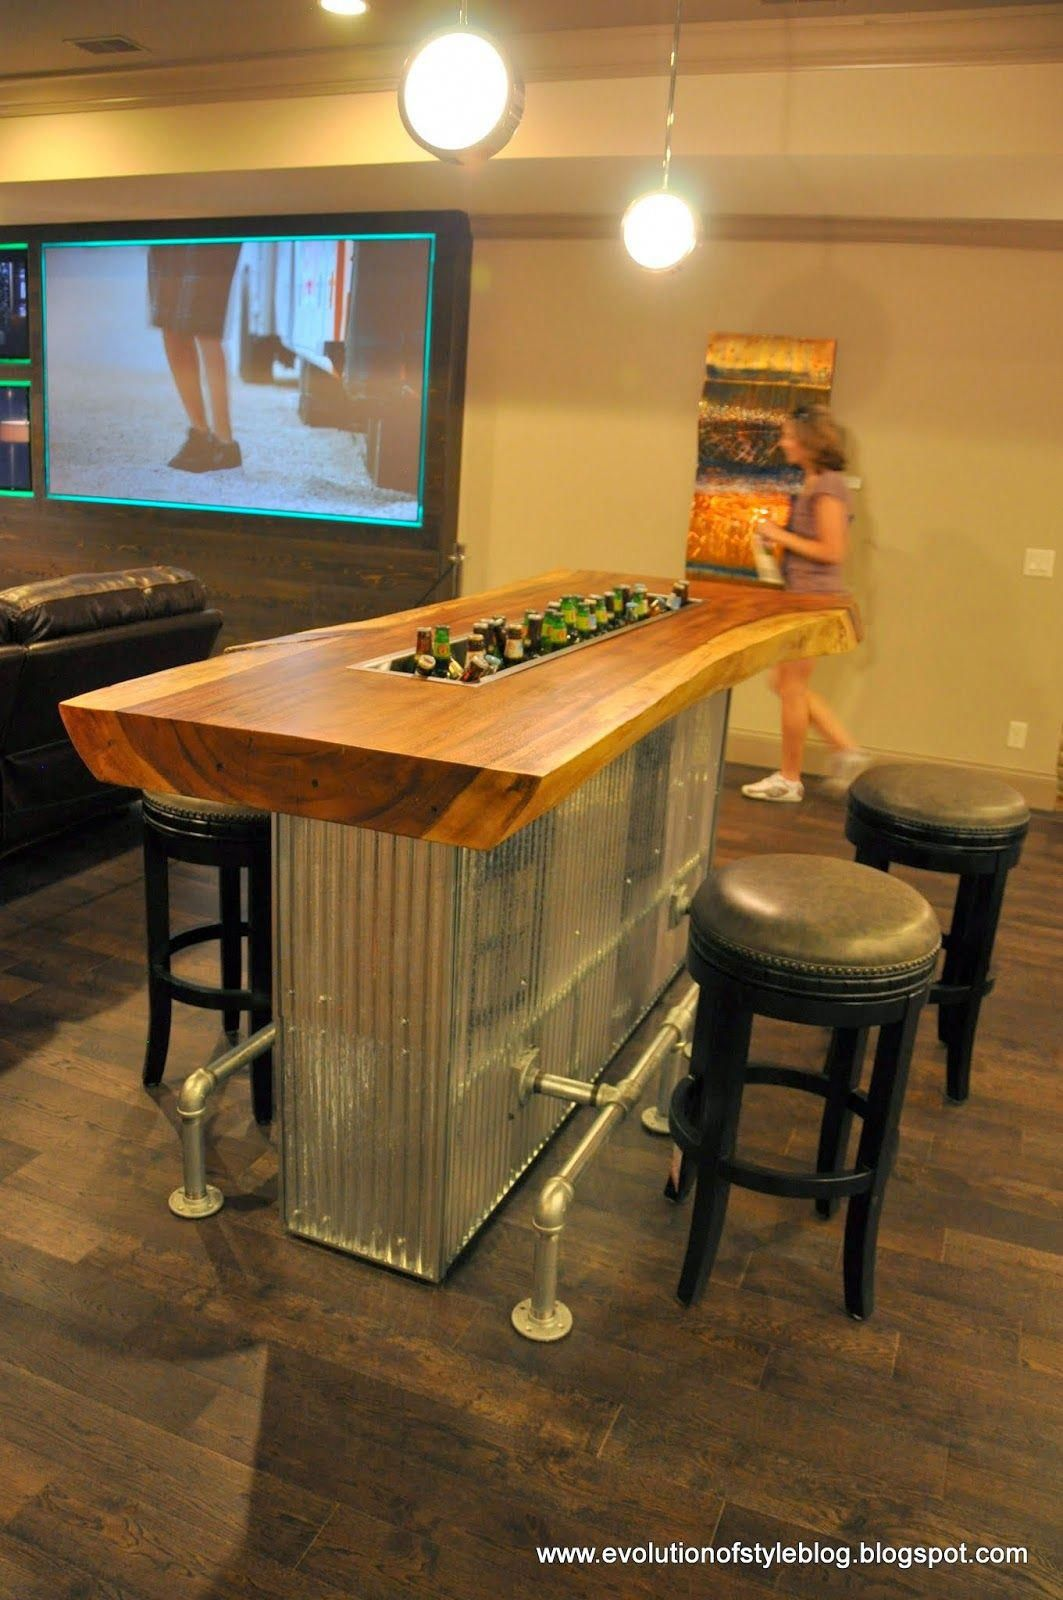 26 Super Cool Outdoor Bars For Your Home Outdoor Bar Ideas Diy